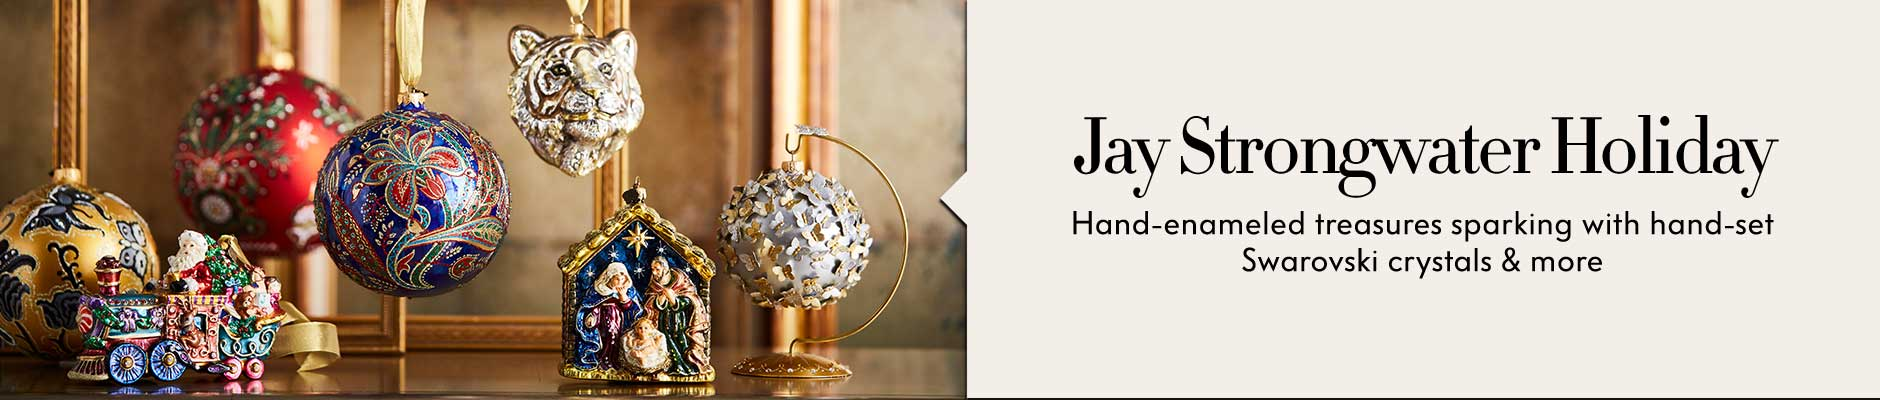 Jay Strongwater Holiday - Hand-enameled treasures sparking with hand-set Swarovski crystals & more